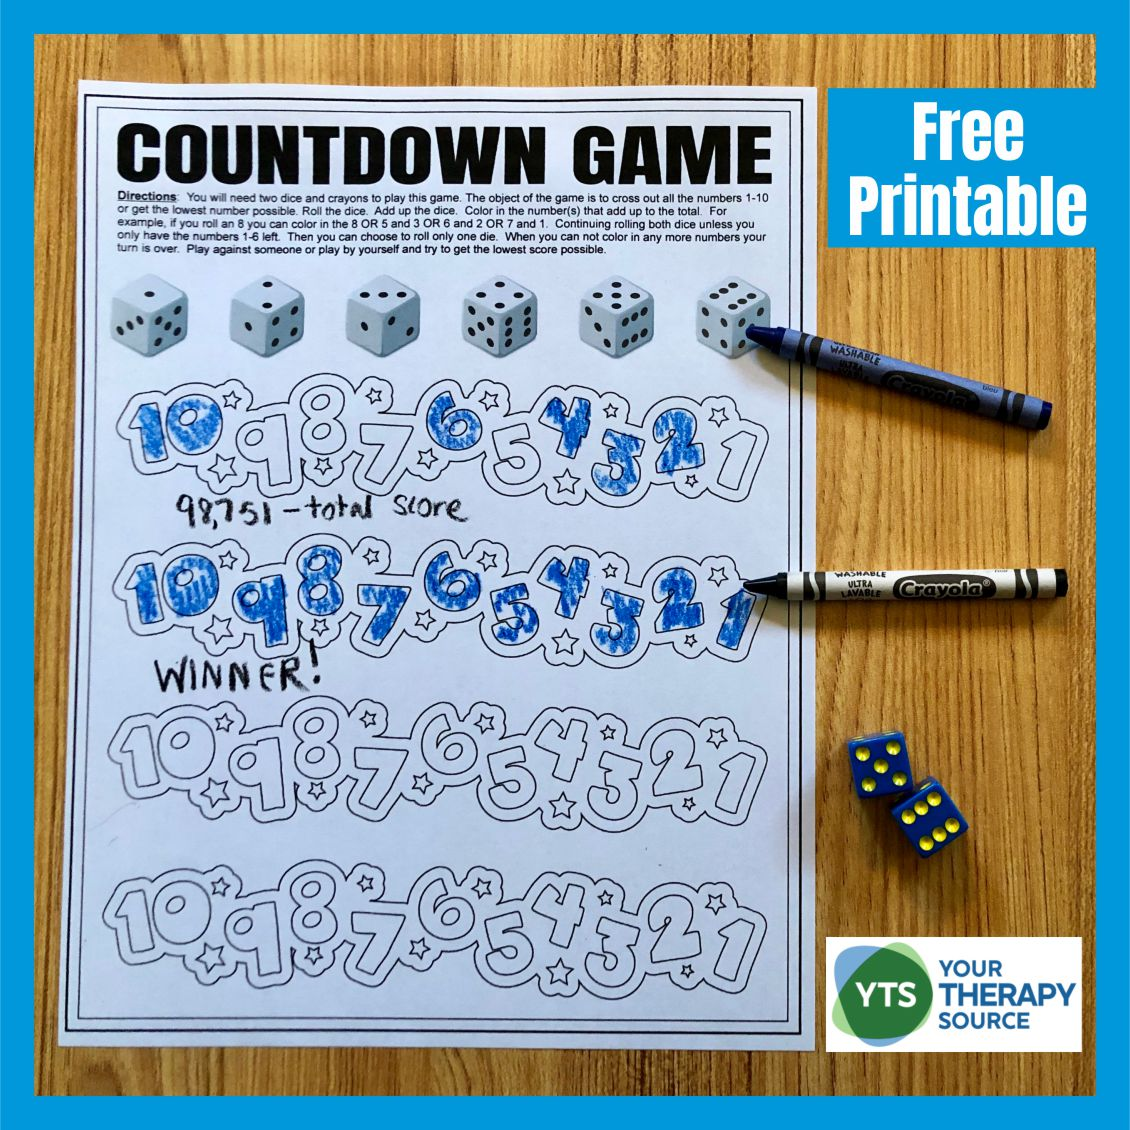 Need a New Year's Eve countdown game?  Check out this dice game for your New Year's Eve celebration with the children.  It is just like Shut the Box.  You can play with one player or four players.  Download your free New Year's Eve Countdown Game at the bottom of the post.